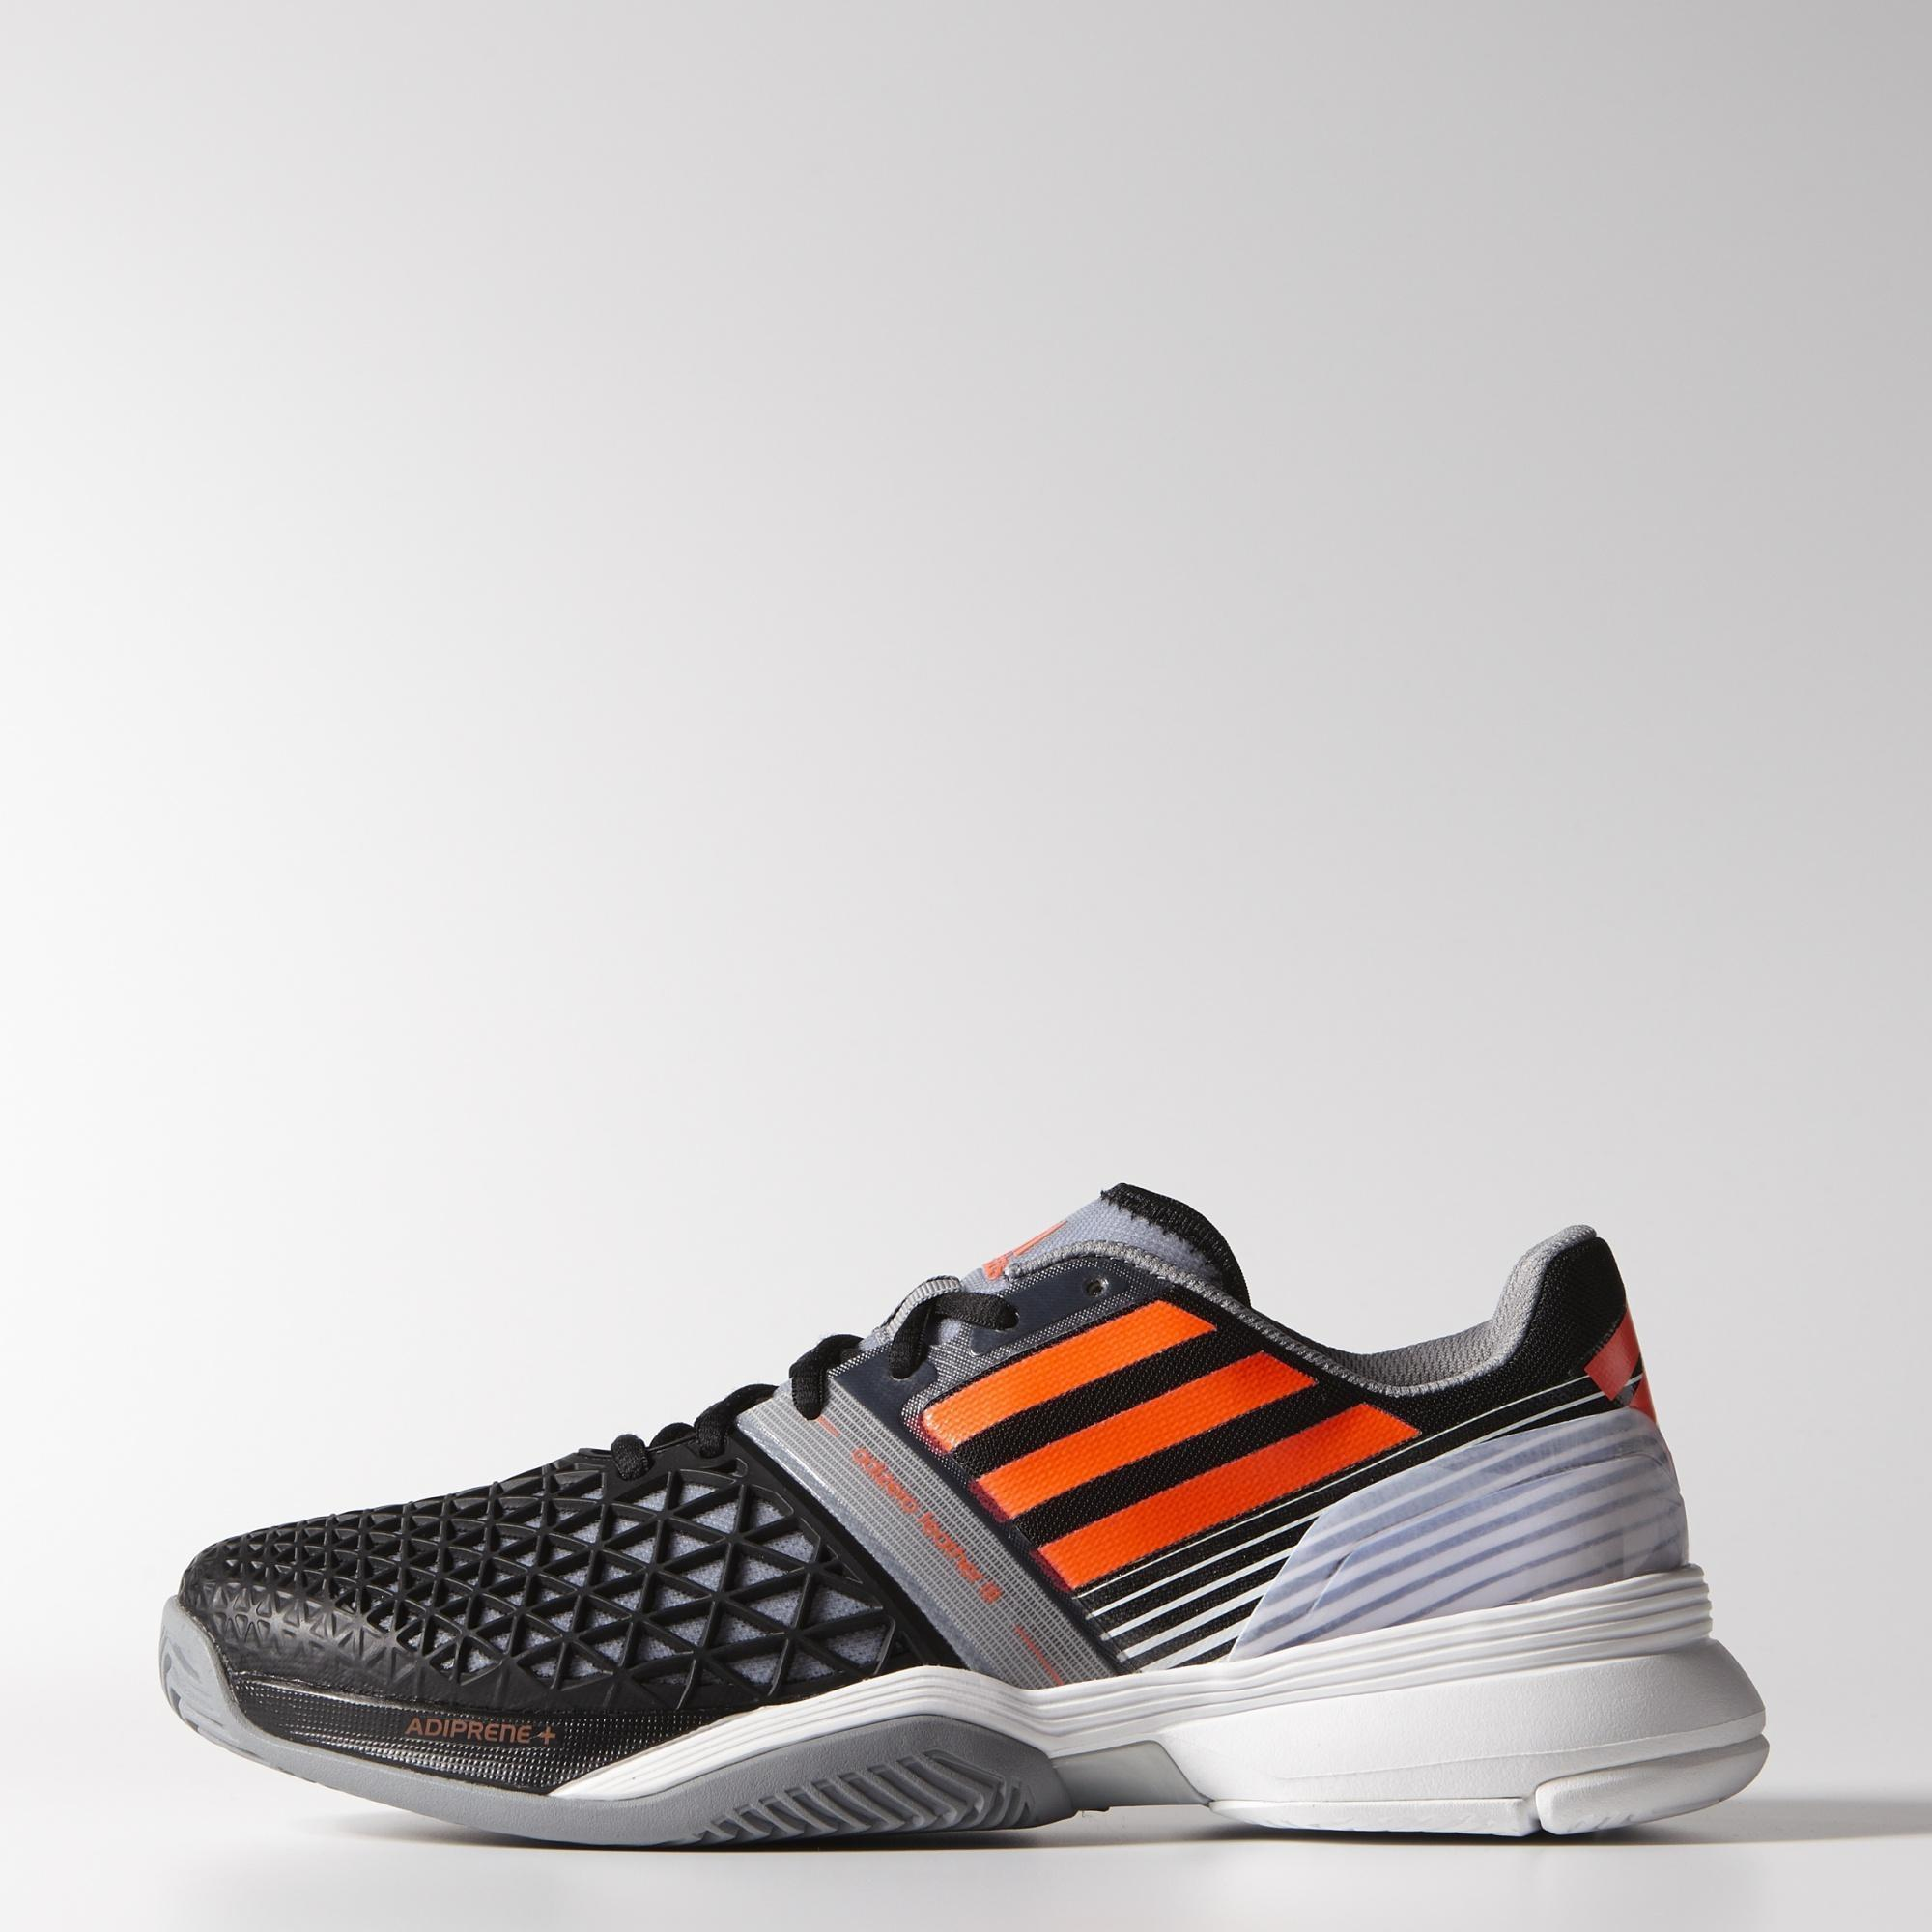 check out bcf5d 17536 Adidas Mens CC Adizero Feather III Tennis Shoes - BlackSolar Red -  Tennisnuts.com